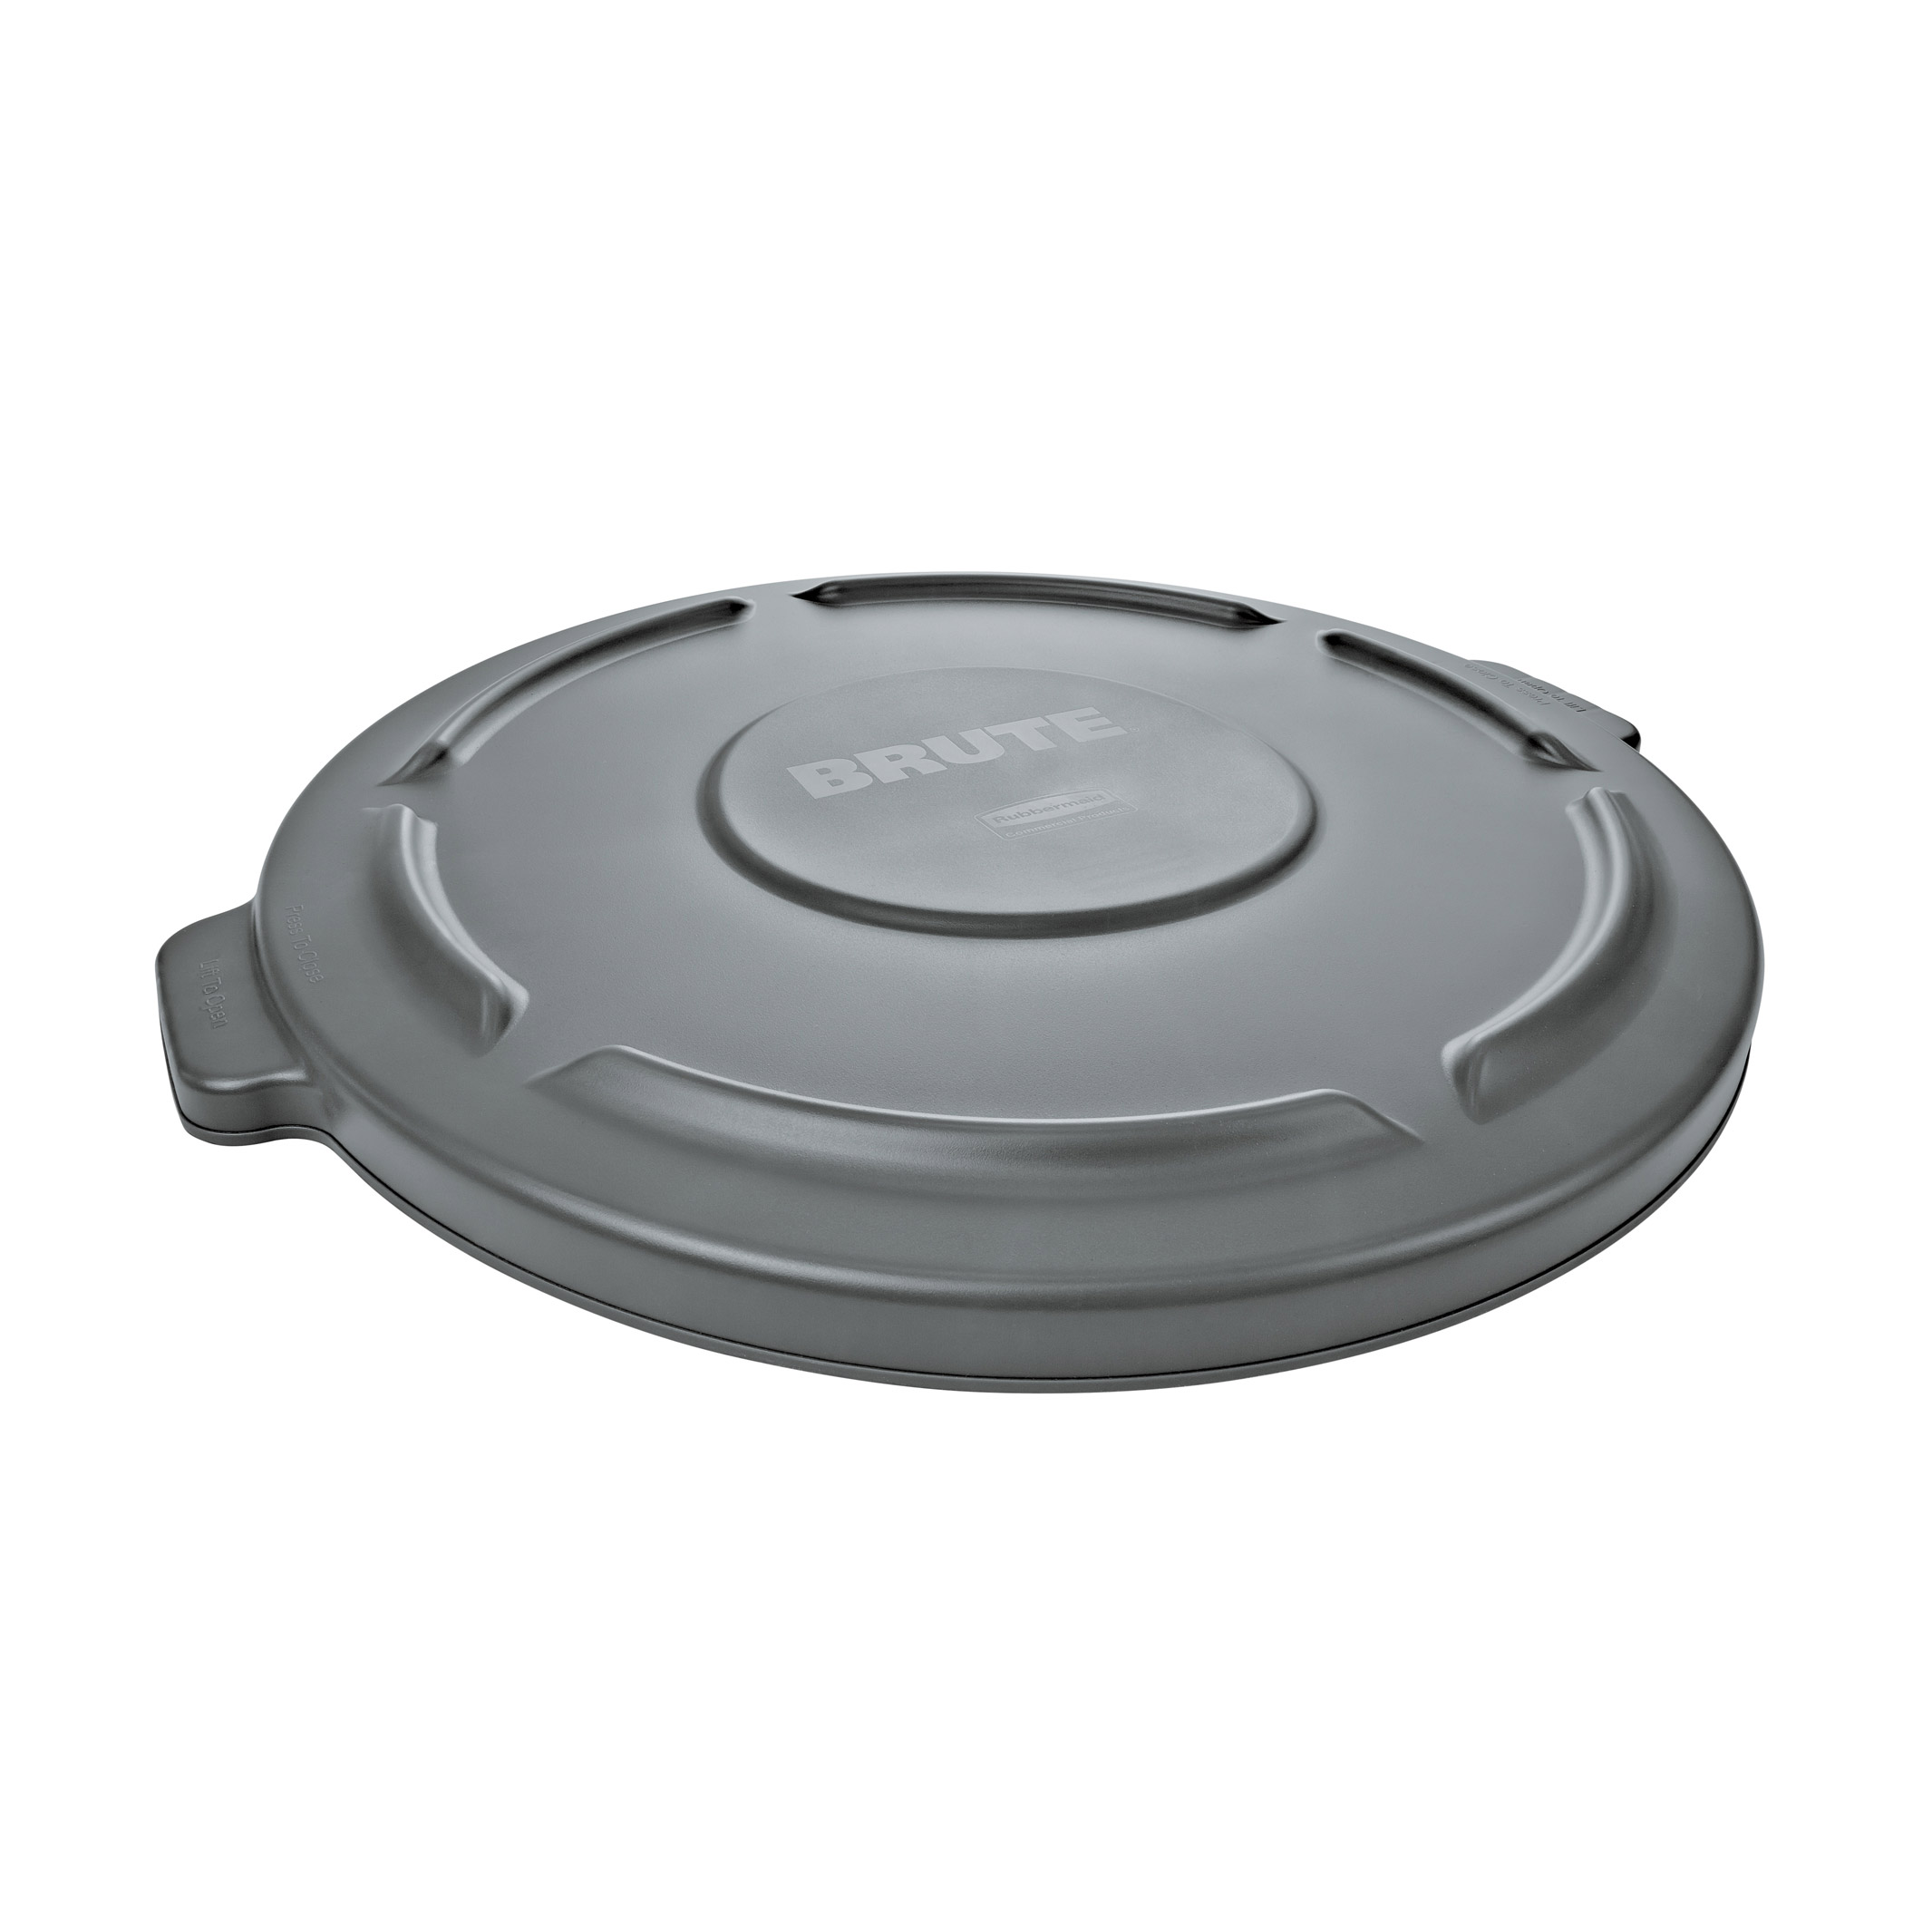 Rubbermaid Commercial Products FG260900GRAY trash receptacle lid / top